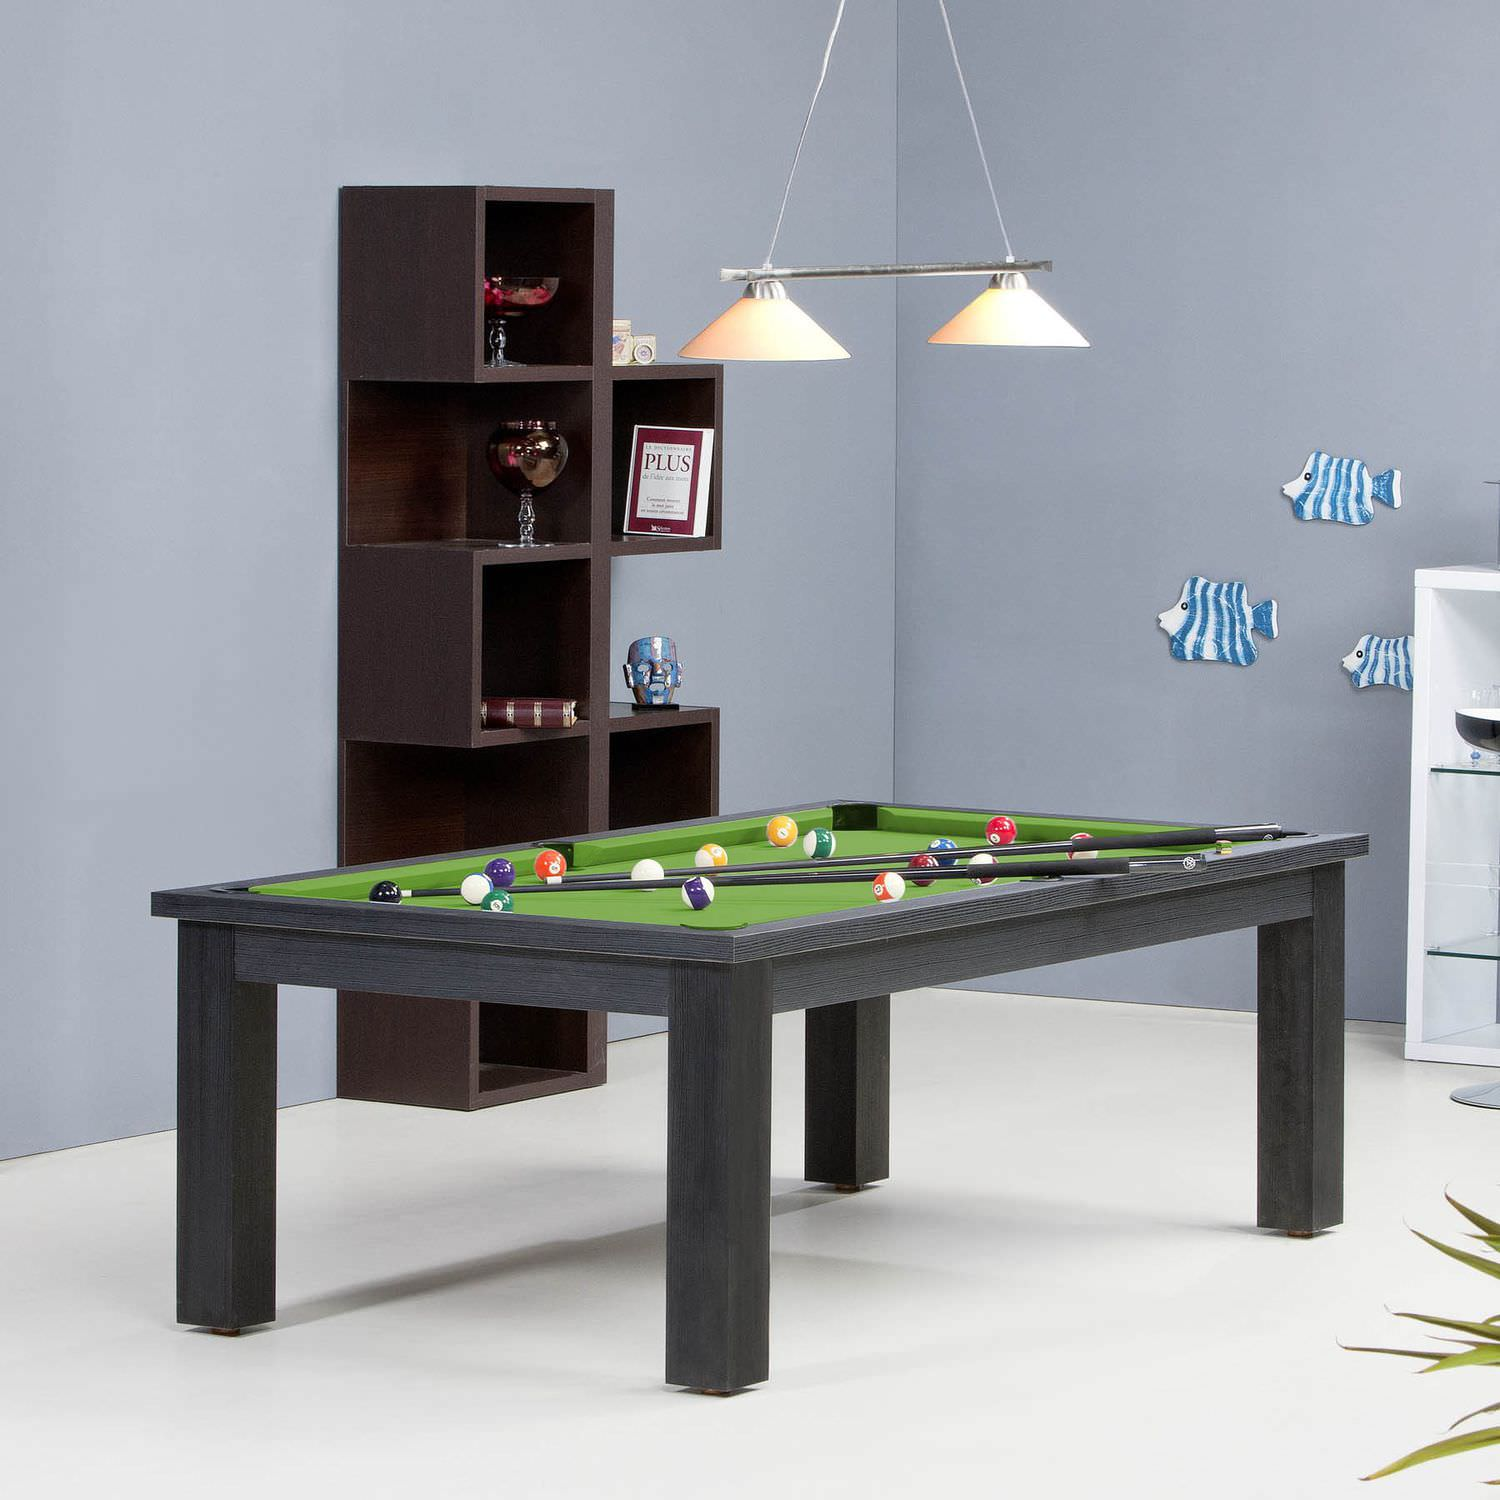 Dining Table Pool Tables Convertible Contemporary Pool Table Convertible Dining Tables Not